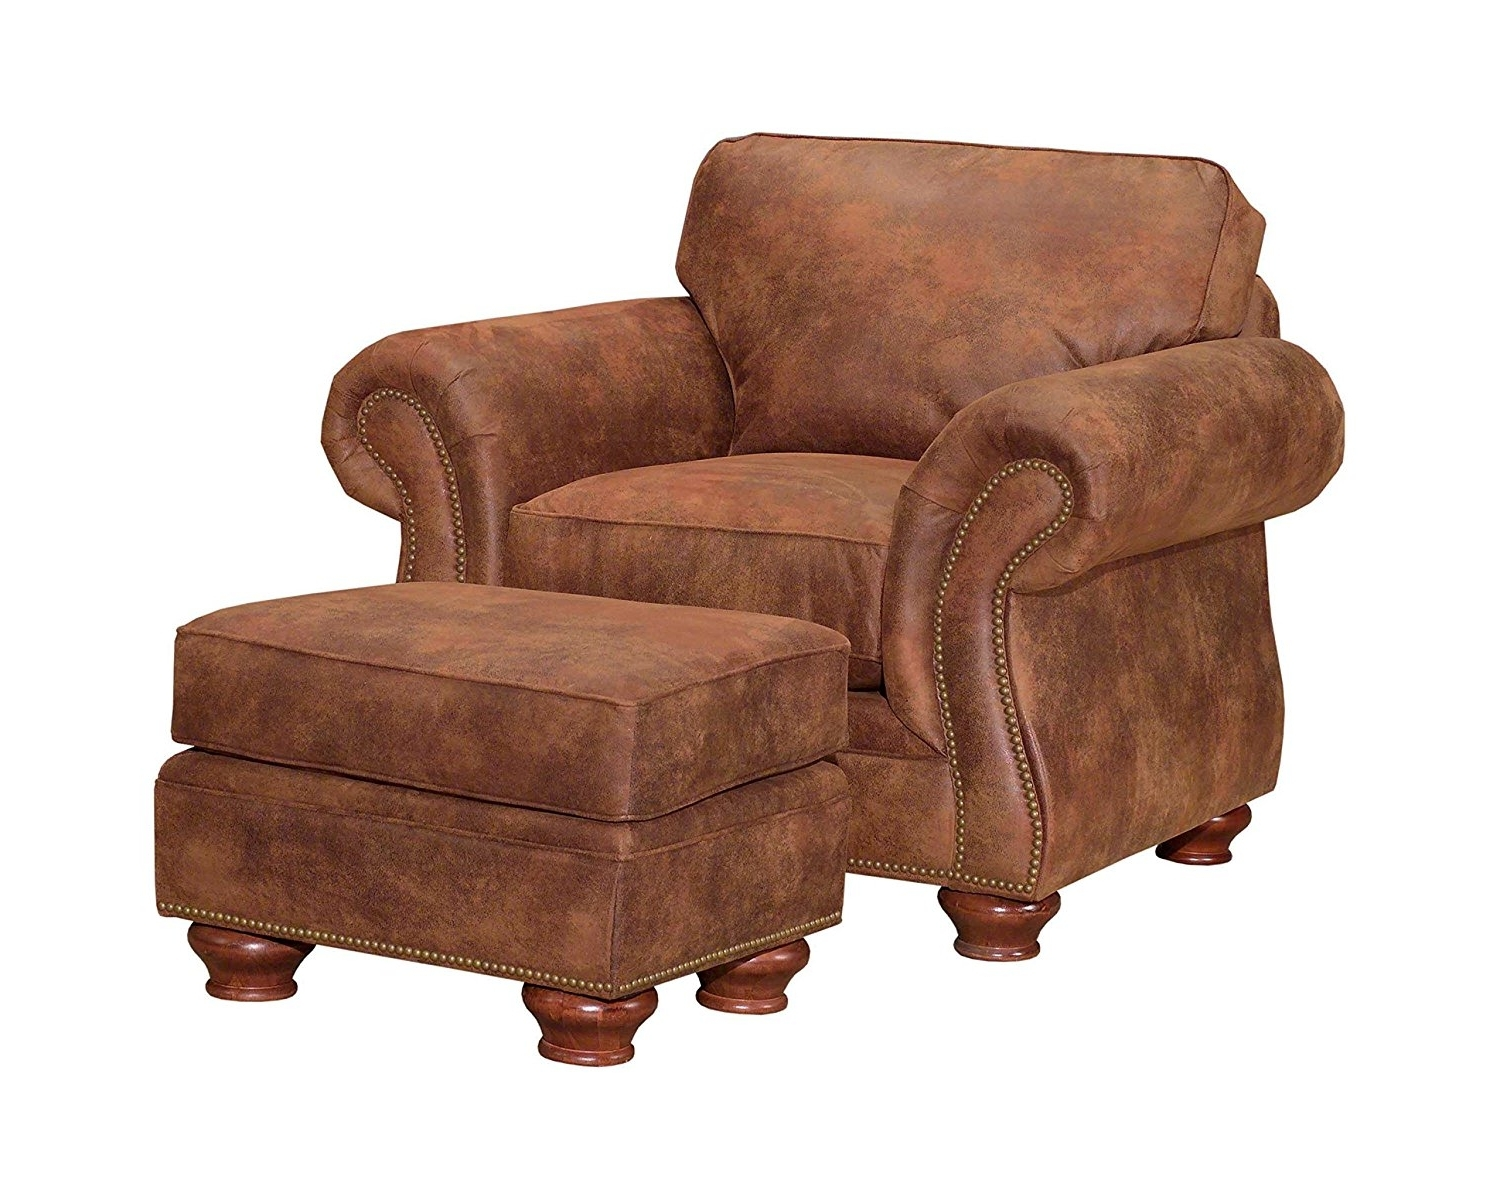 Amazon: Broyhill Laramie Chair, Chocolate: Kitchen & Dining Inside Well Known Chairs With Ottoman (View 8 of 15)